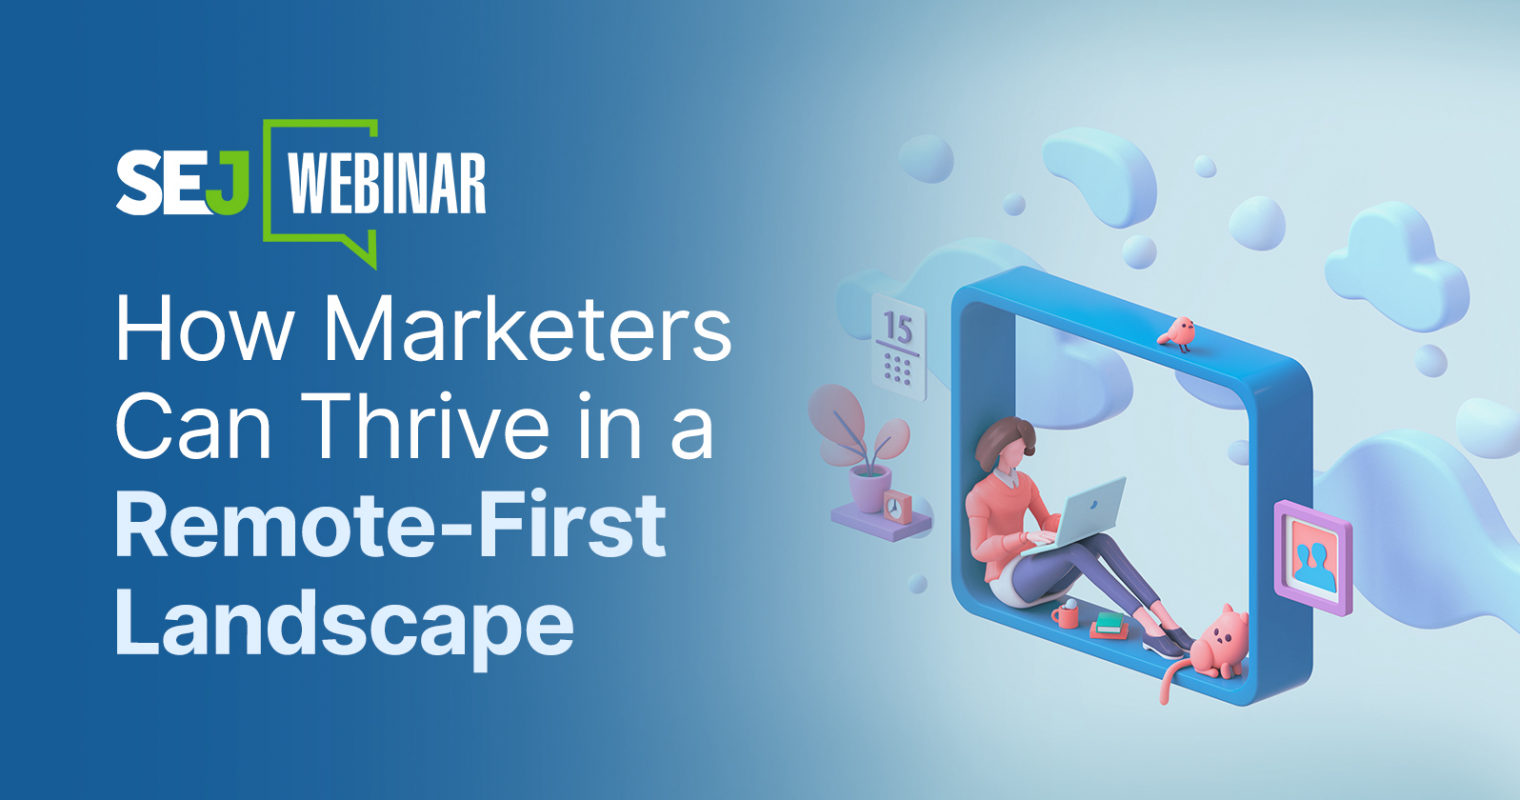 How Marketers Can Thrive in a Remote-First Landscape [Webinar]